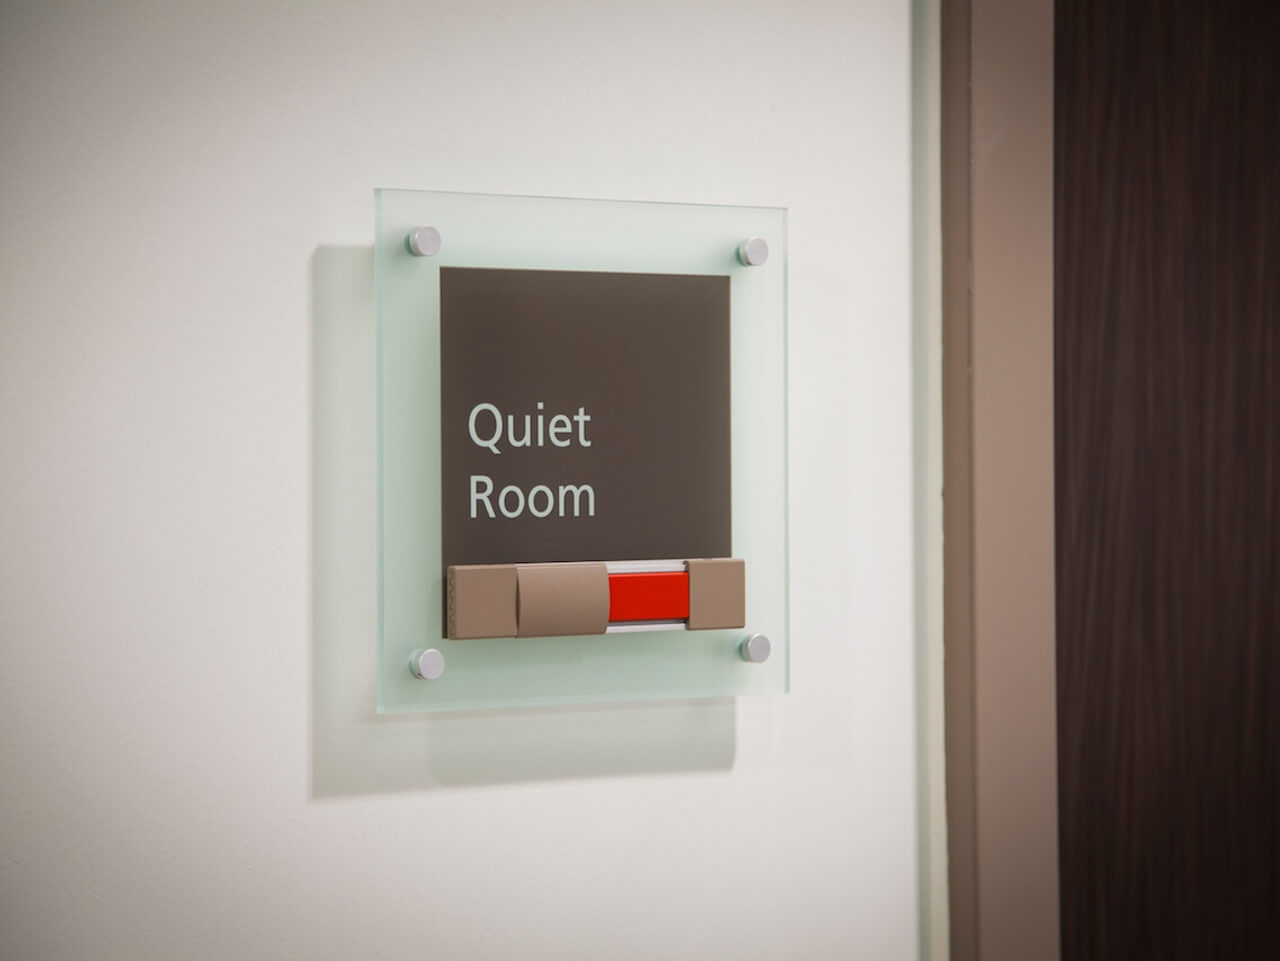 Quiet room signage with sliding detail to indicate room use